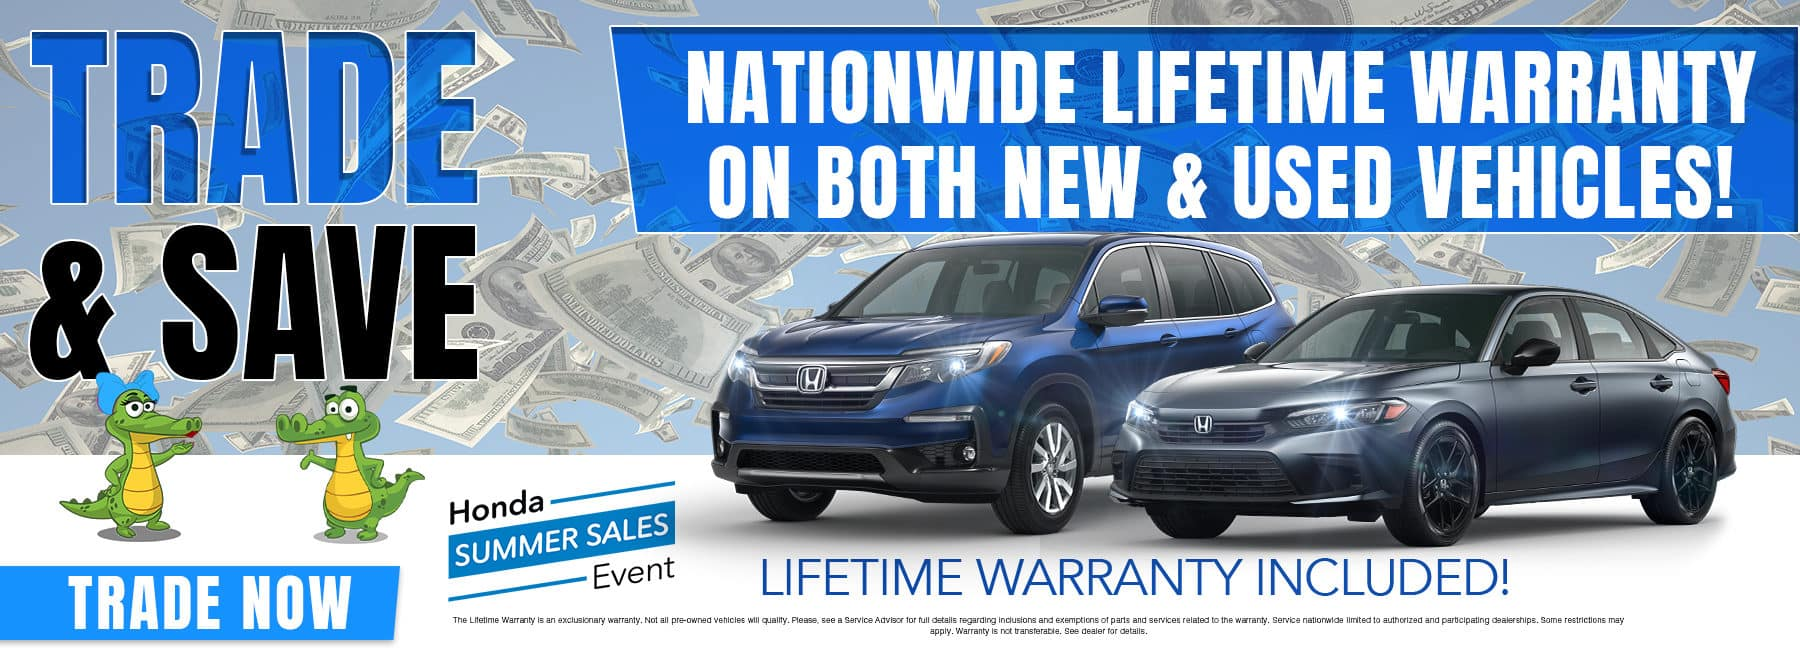 Trade & Save | Nationwide Lifetime Warranty On Both New & Used Vehicles!